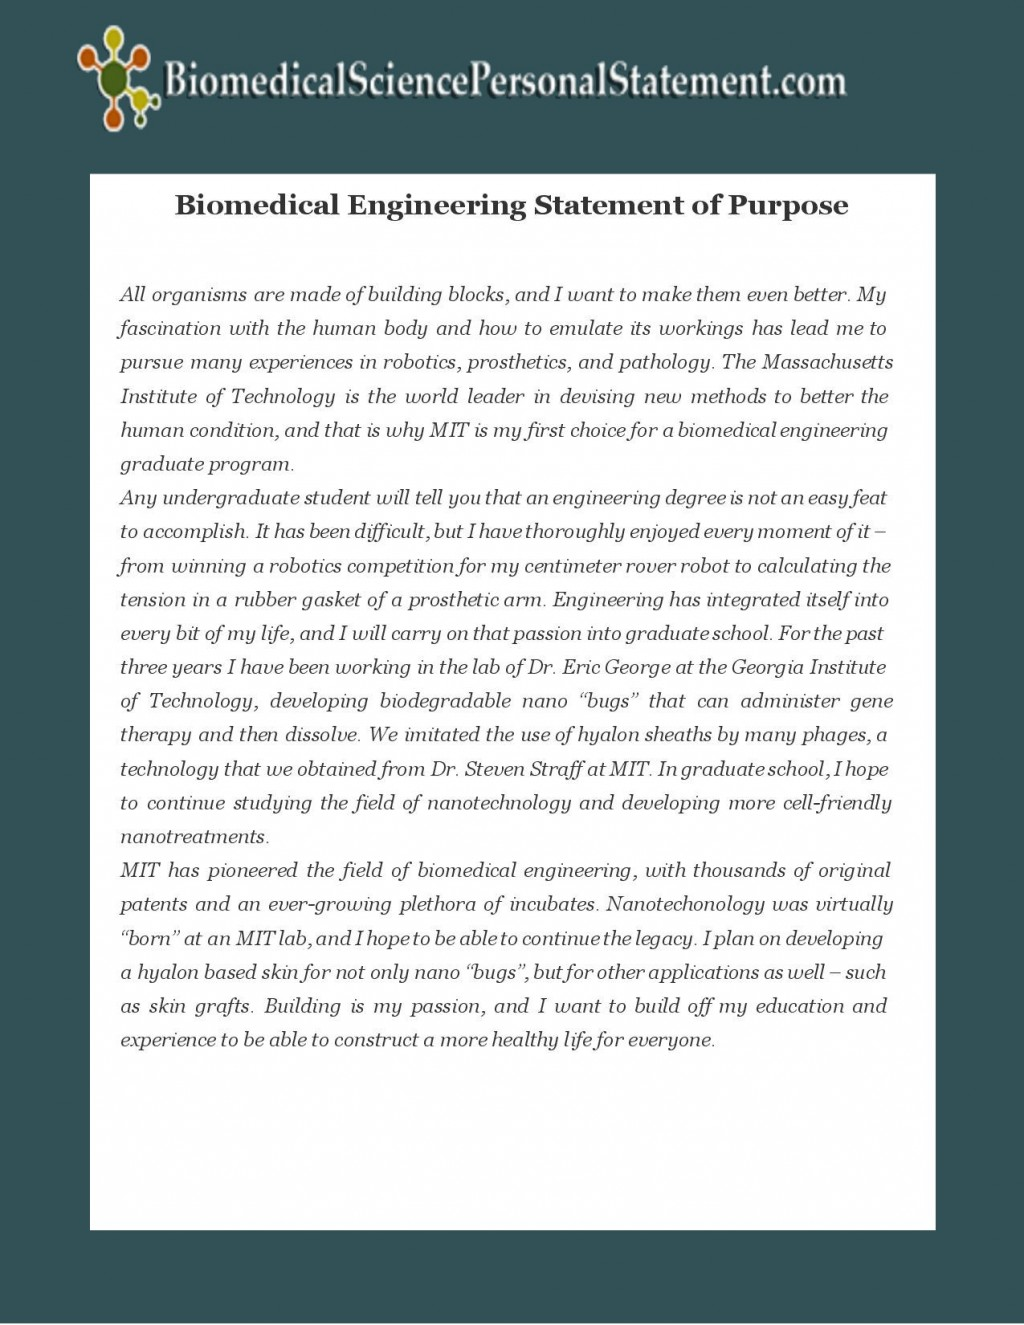 008 Essay Example Engineering Sample Sop For Breathtaking Wvu Contest Topics Texas A&m Length Large